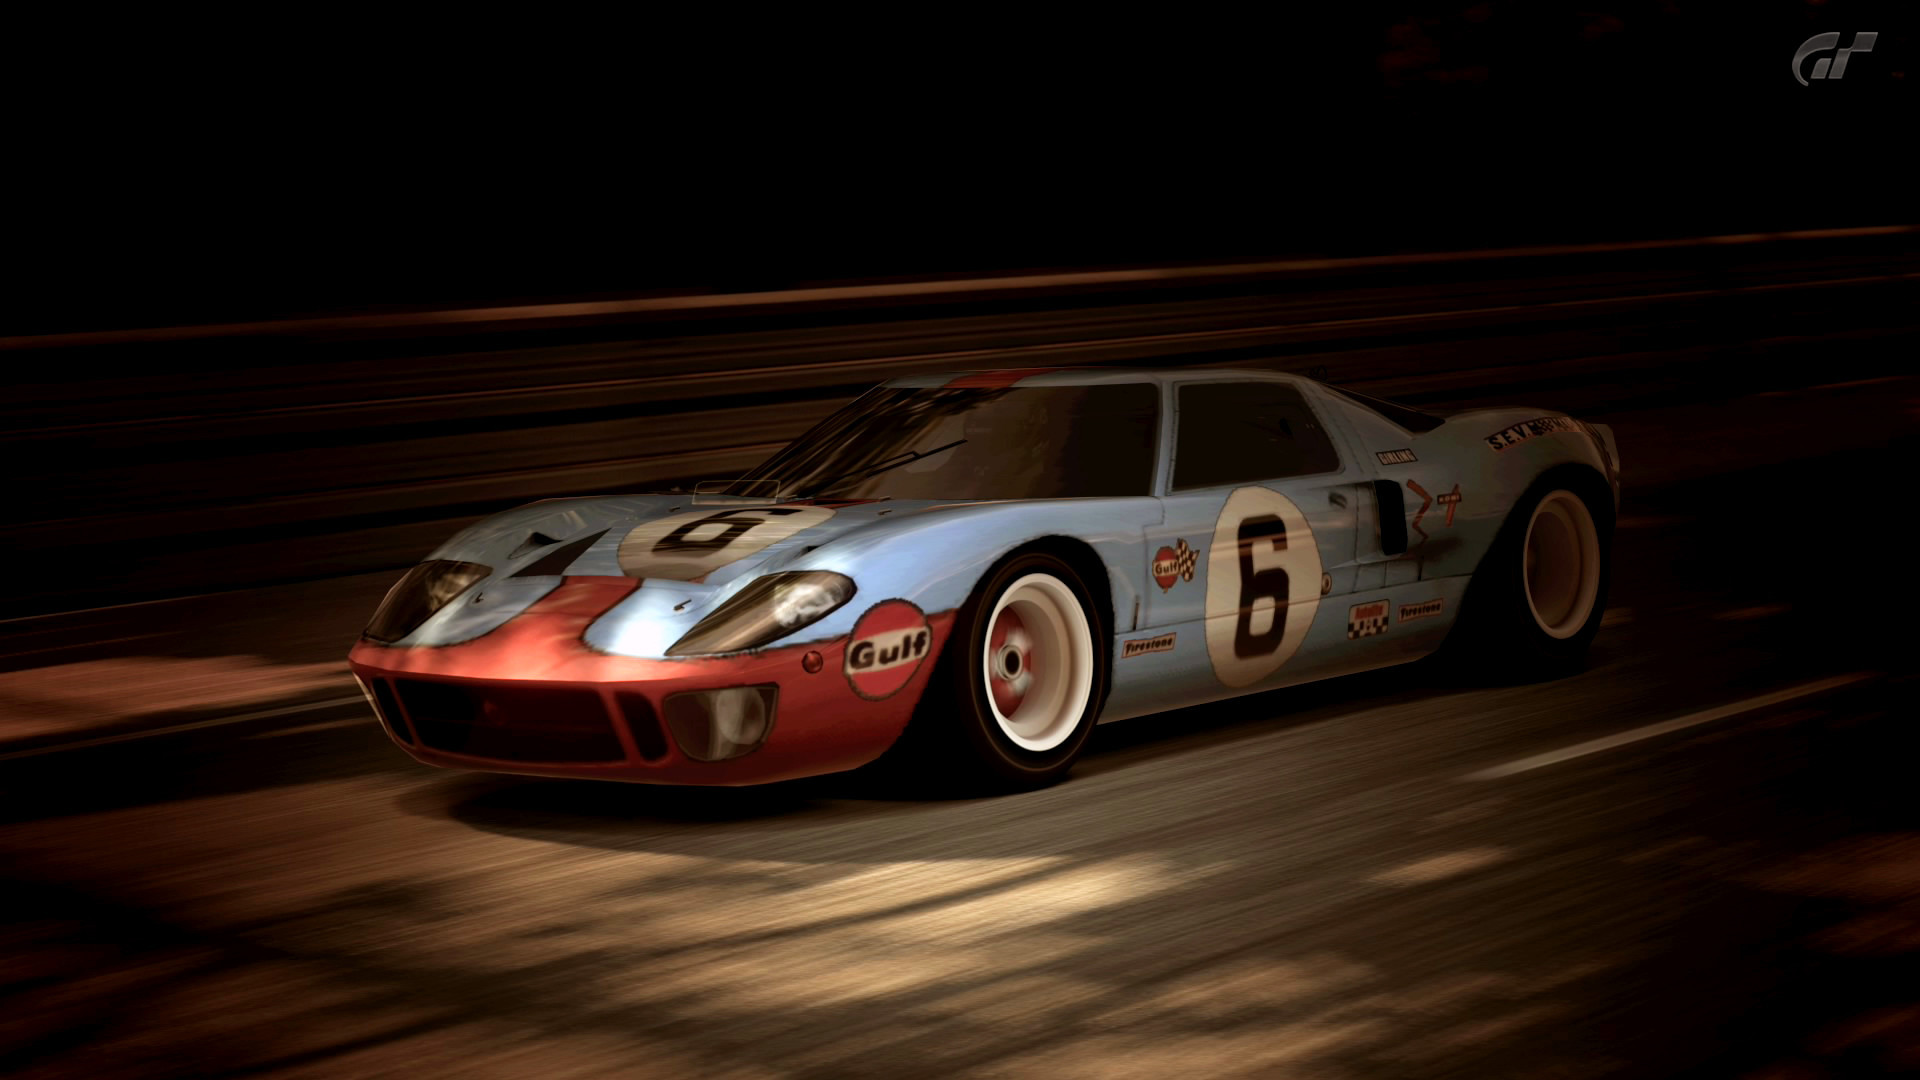 Res: 1920x1080, Ford Gt40 High Resolution Background On High Resolution Wallpaper